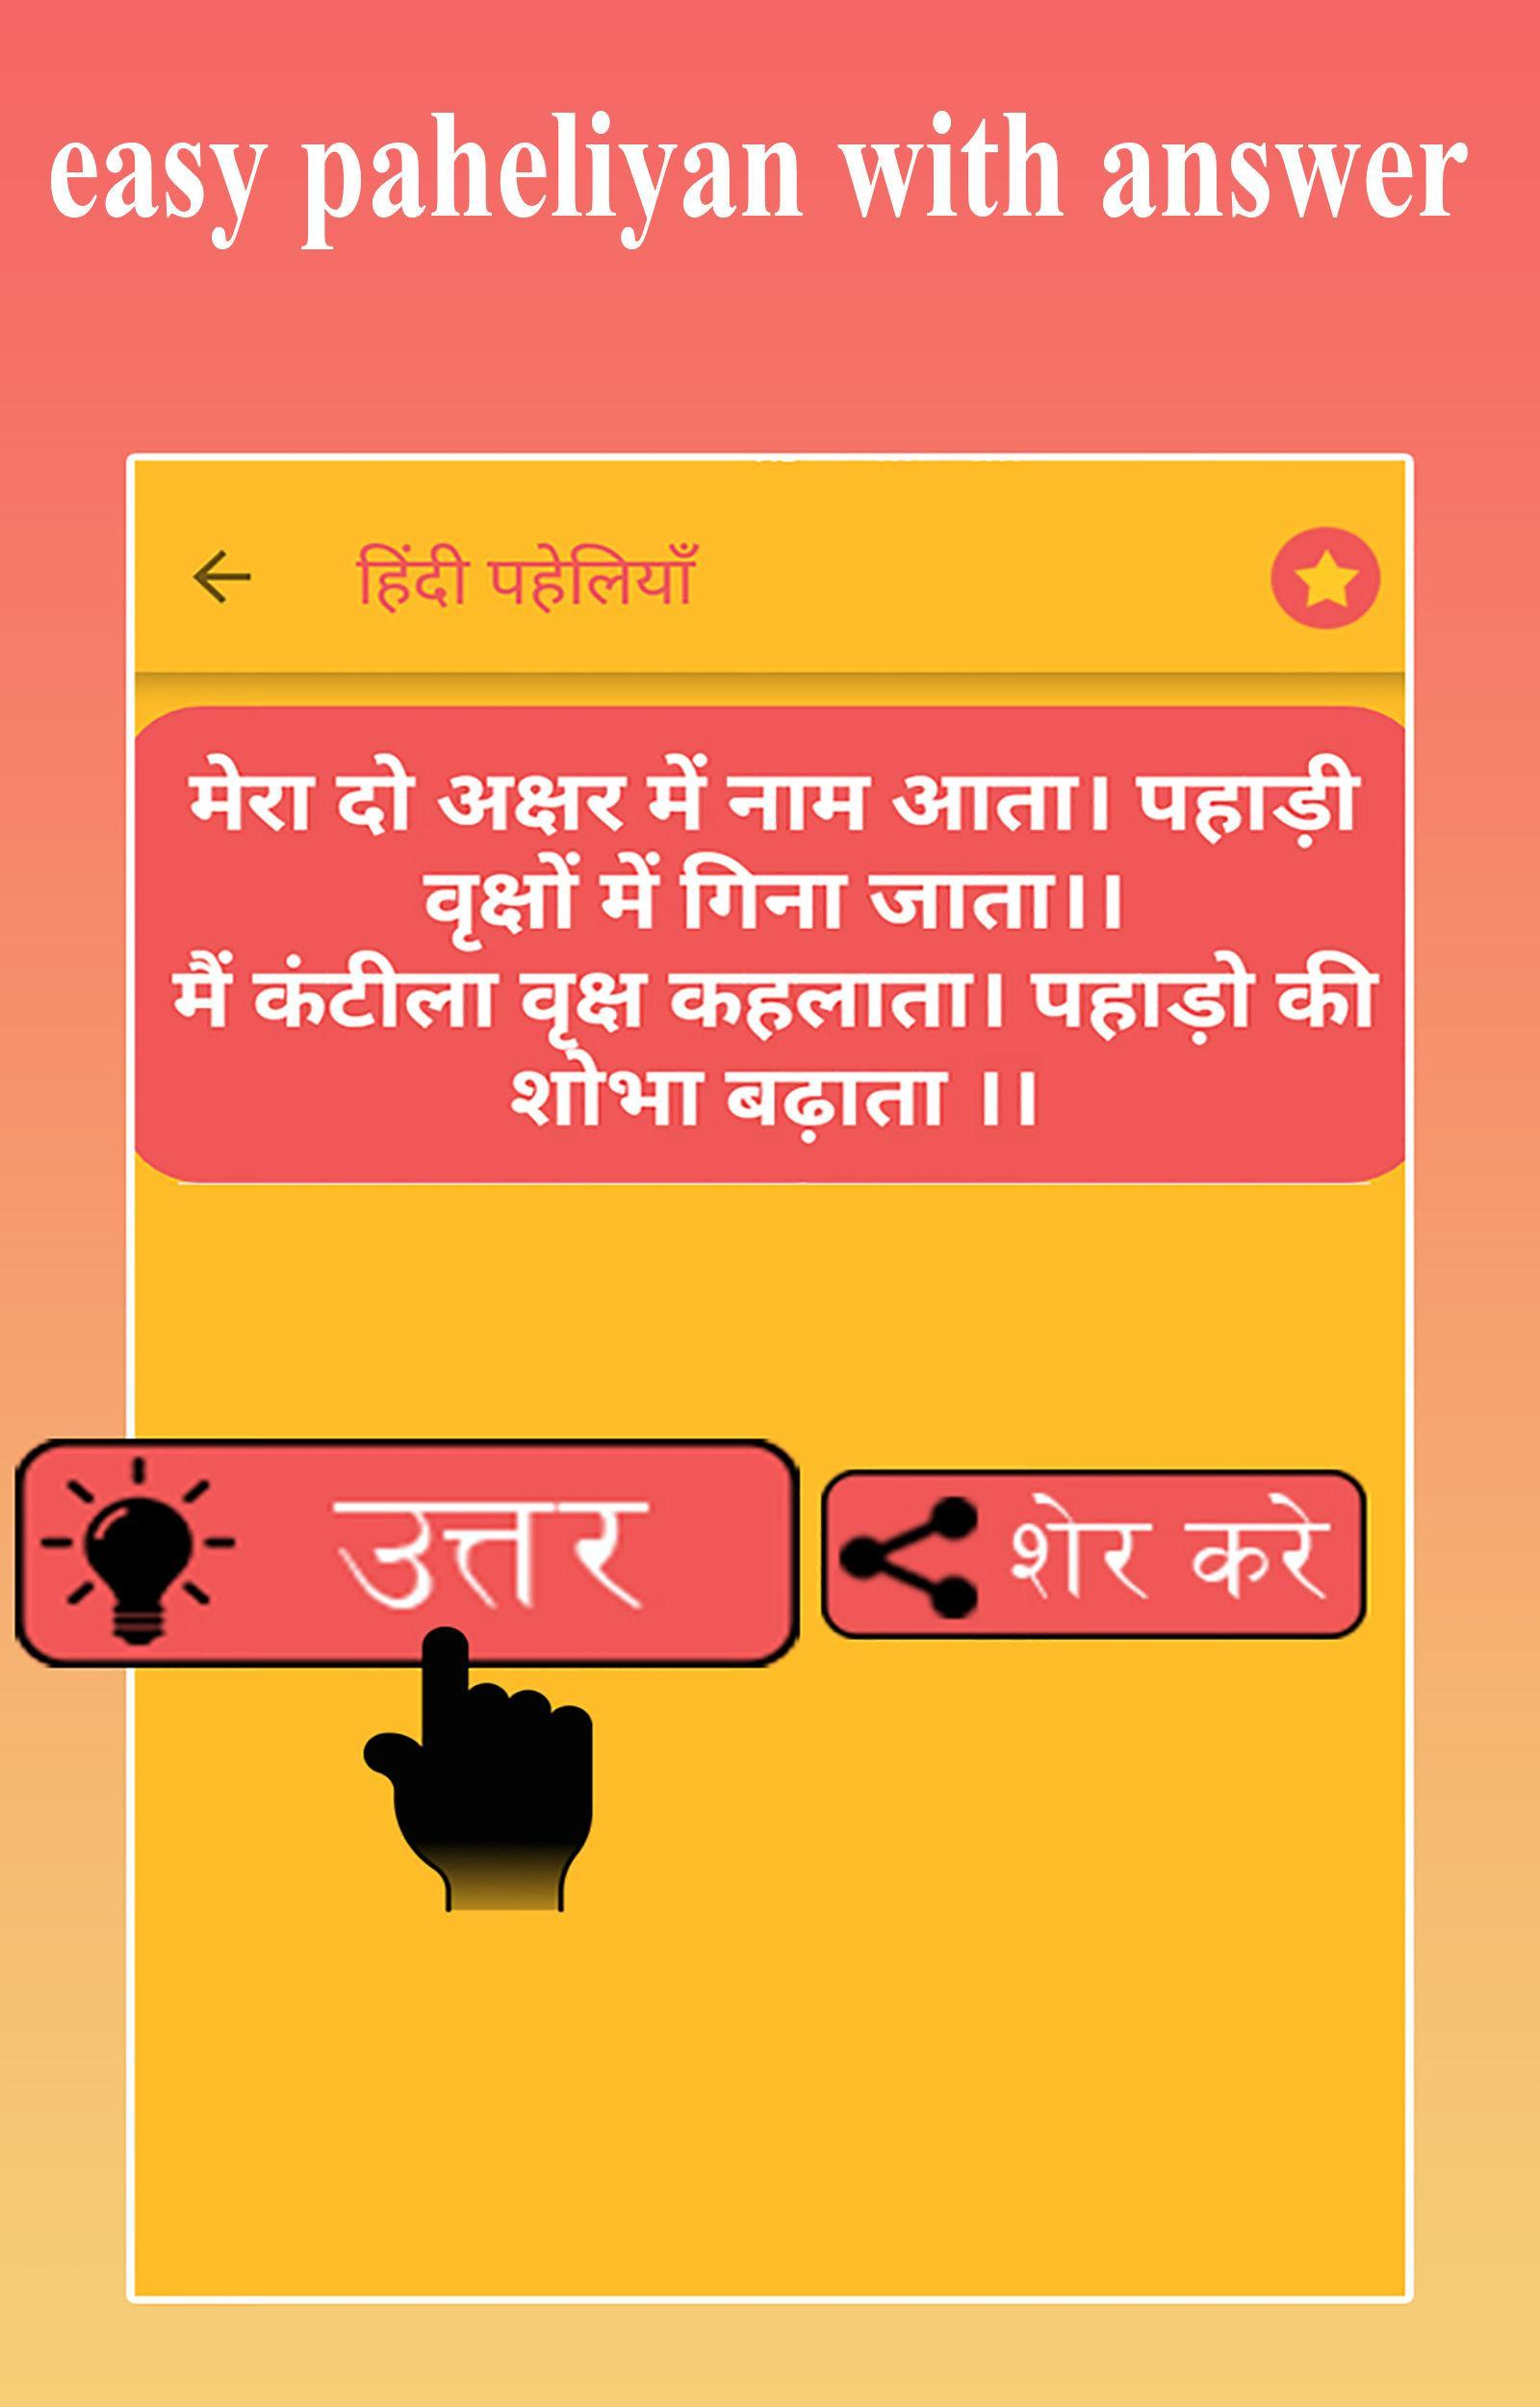 Paheliyan Riddles In Hindi For Android Apk Download